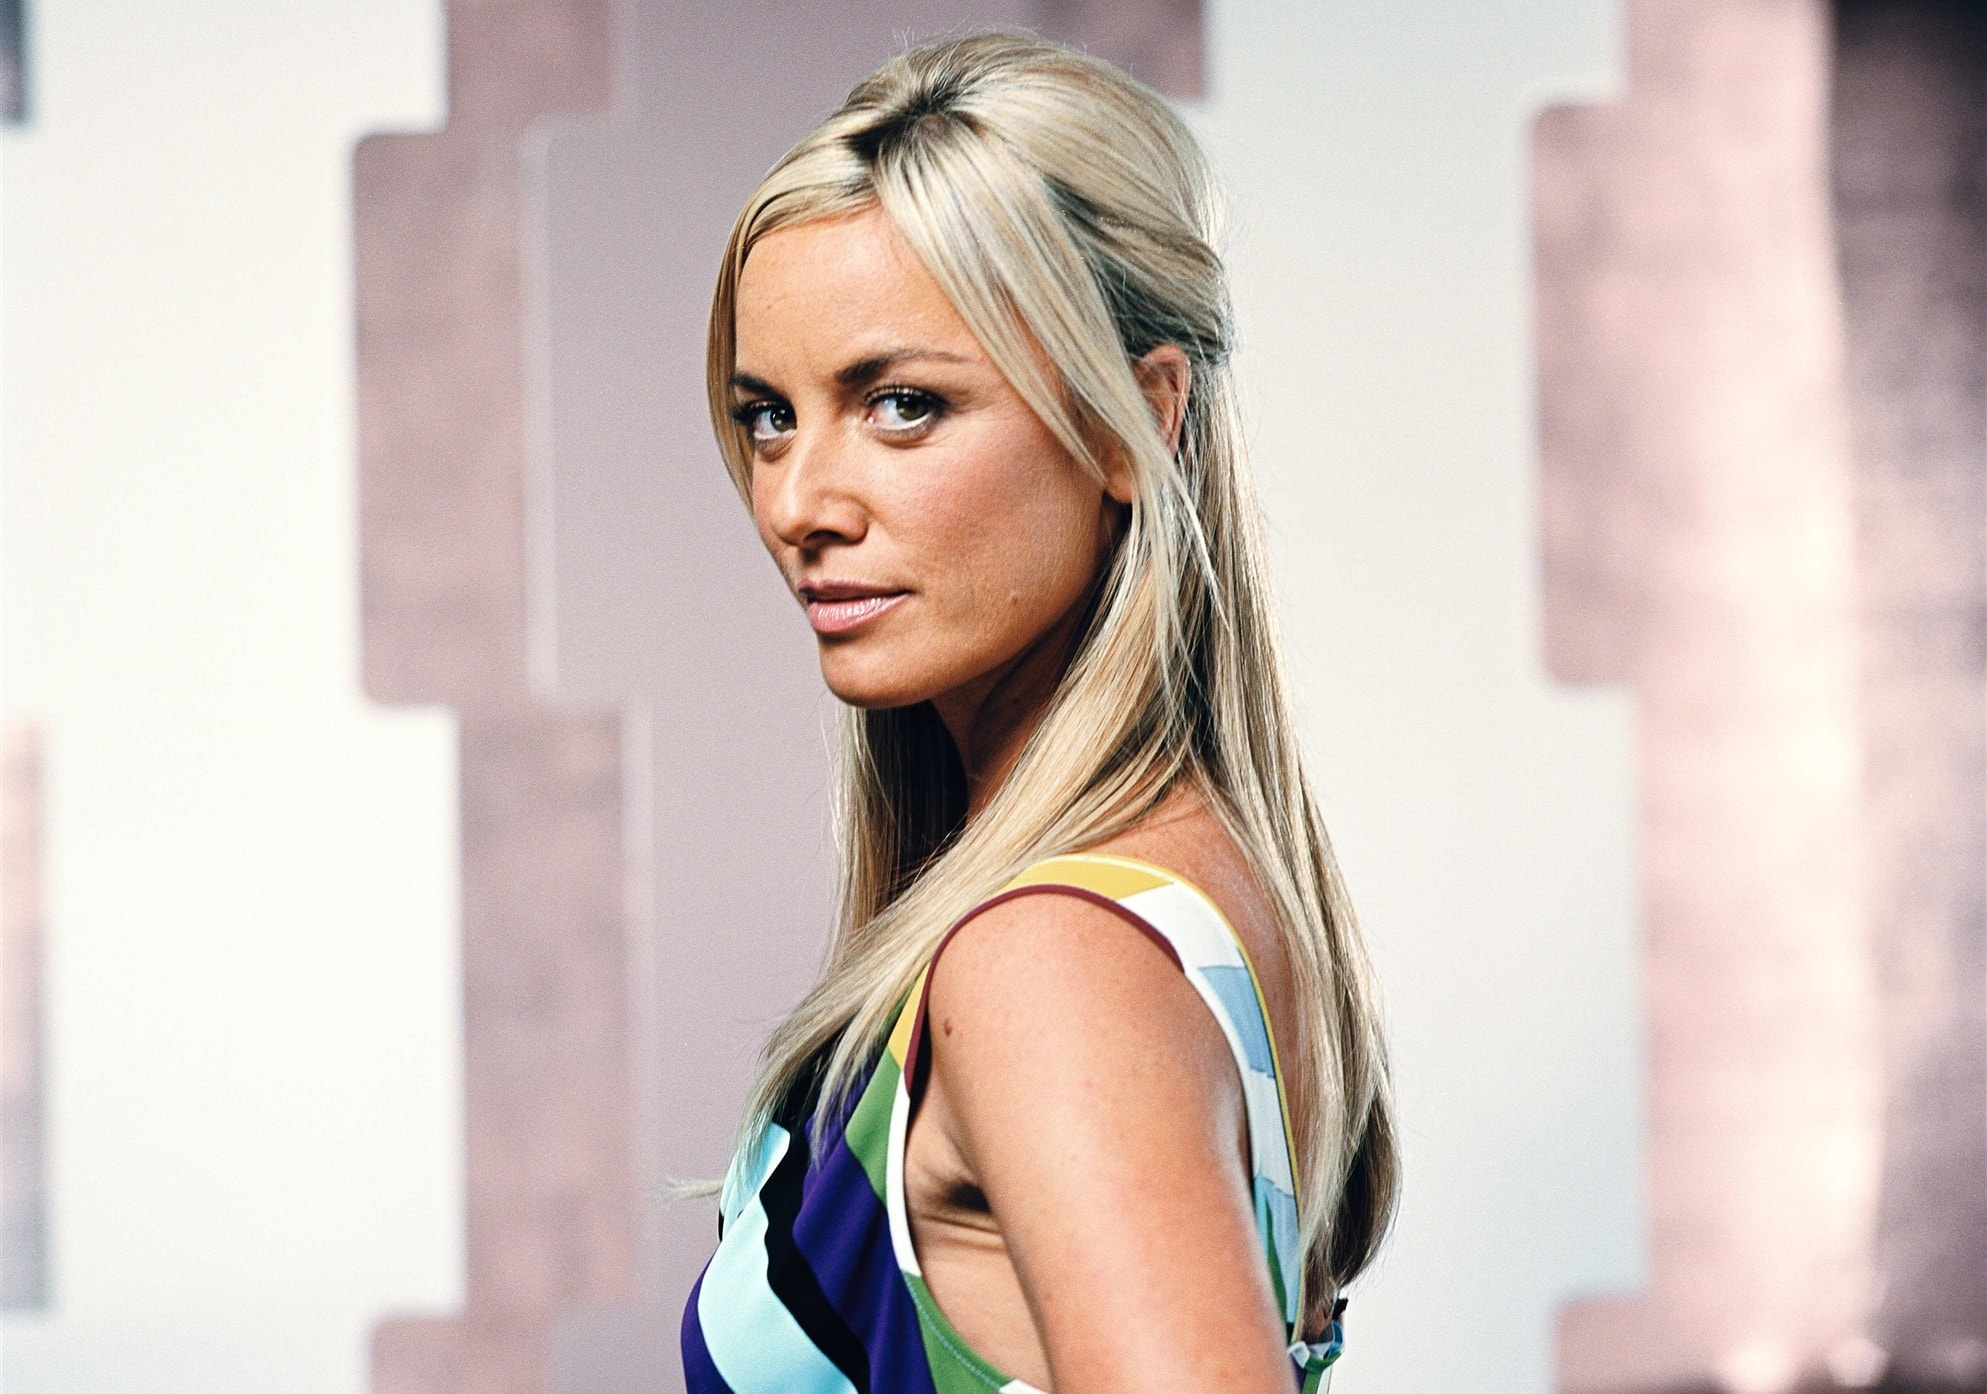 Tamzin Outhwaite widescreen wallpapers